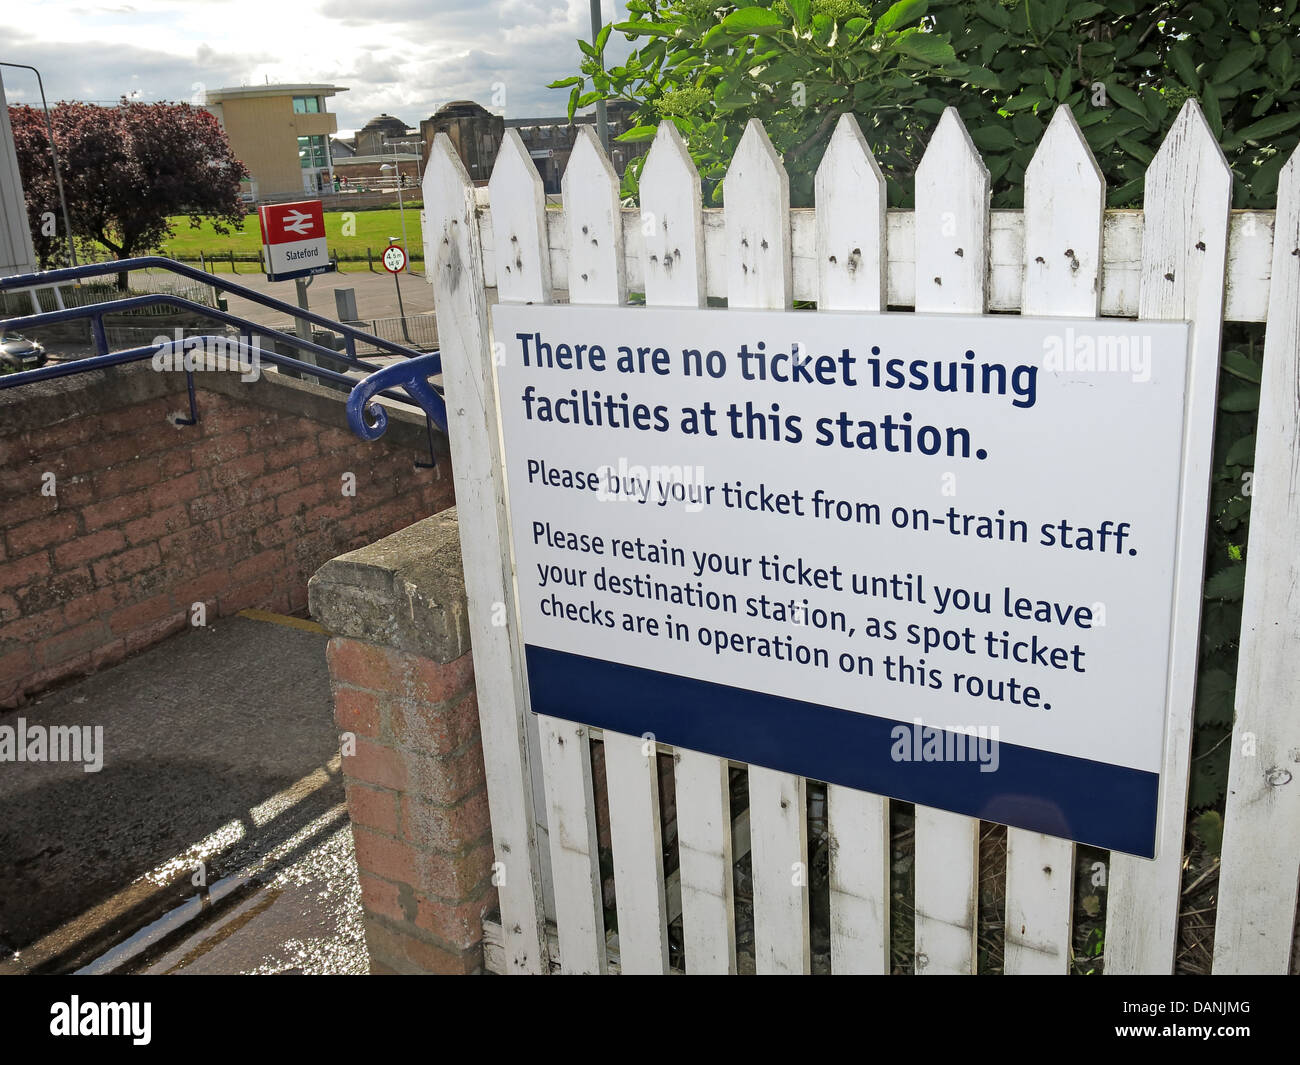 An,example,of,no,on,station,ticketting,at,Slateford,Edinburgh,Scotland,UK,EH14,1BX,EH141BX,there,are,no,ticket,issuing,facilities,at,this,scotrail,scot,rail,gate,platform,personnel,free,stations,BR,British,Rail,Britishrail,railways,railroad,beware,buy,tickets,in,advance,Scottish,scots,cuts,gotonysmith,Buy Pictures of,Buy Images Of